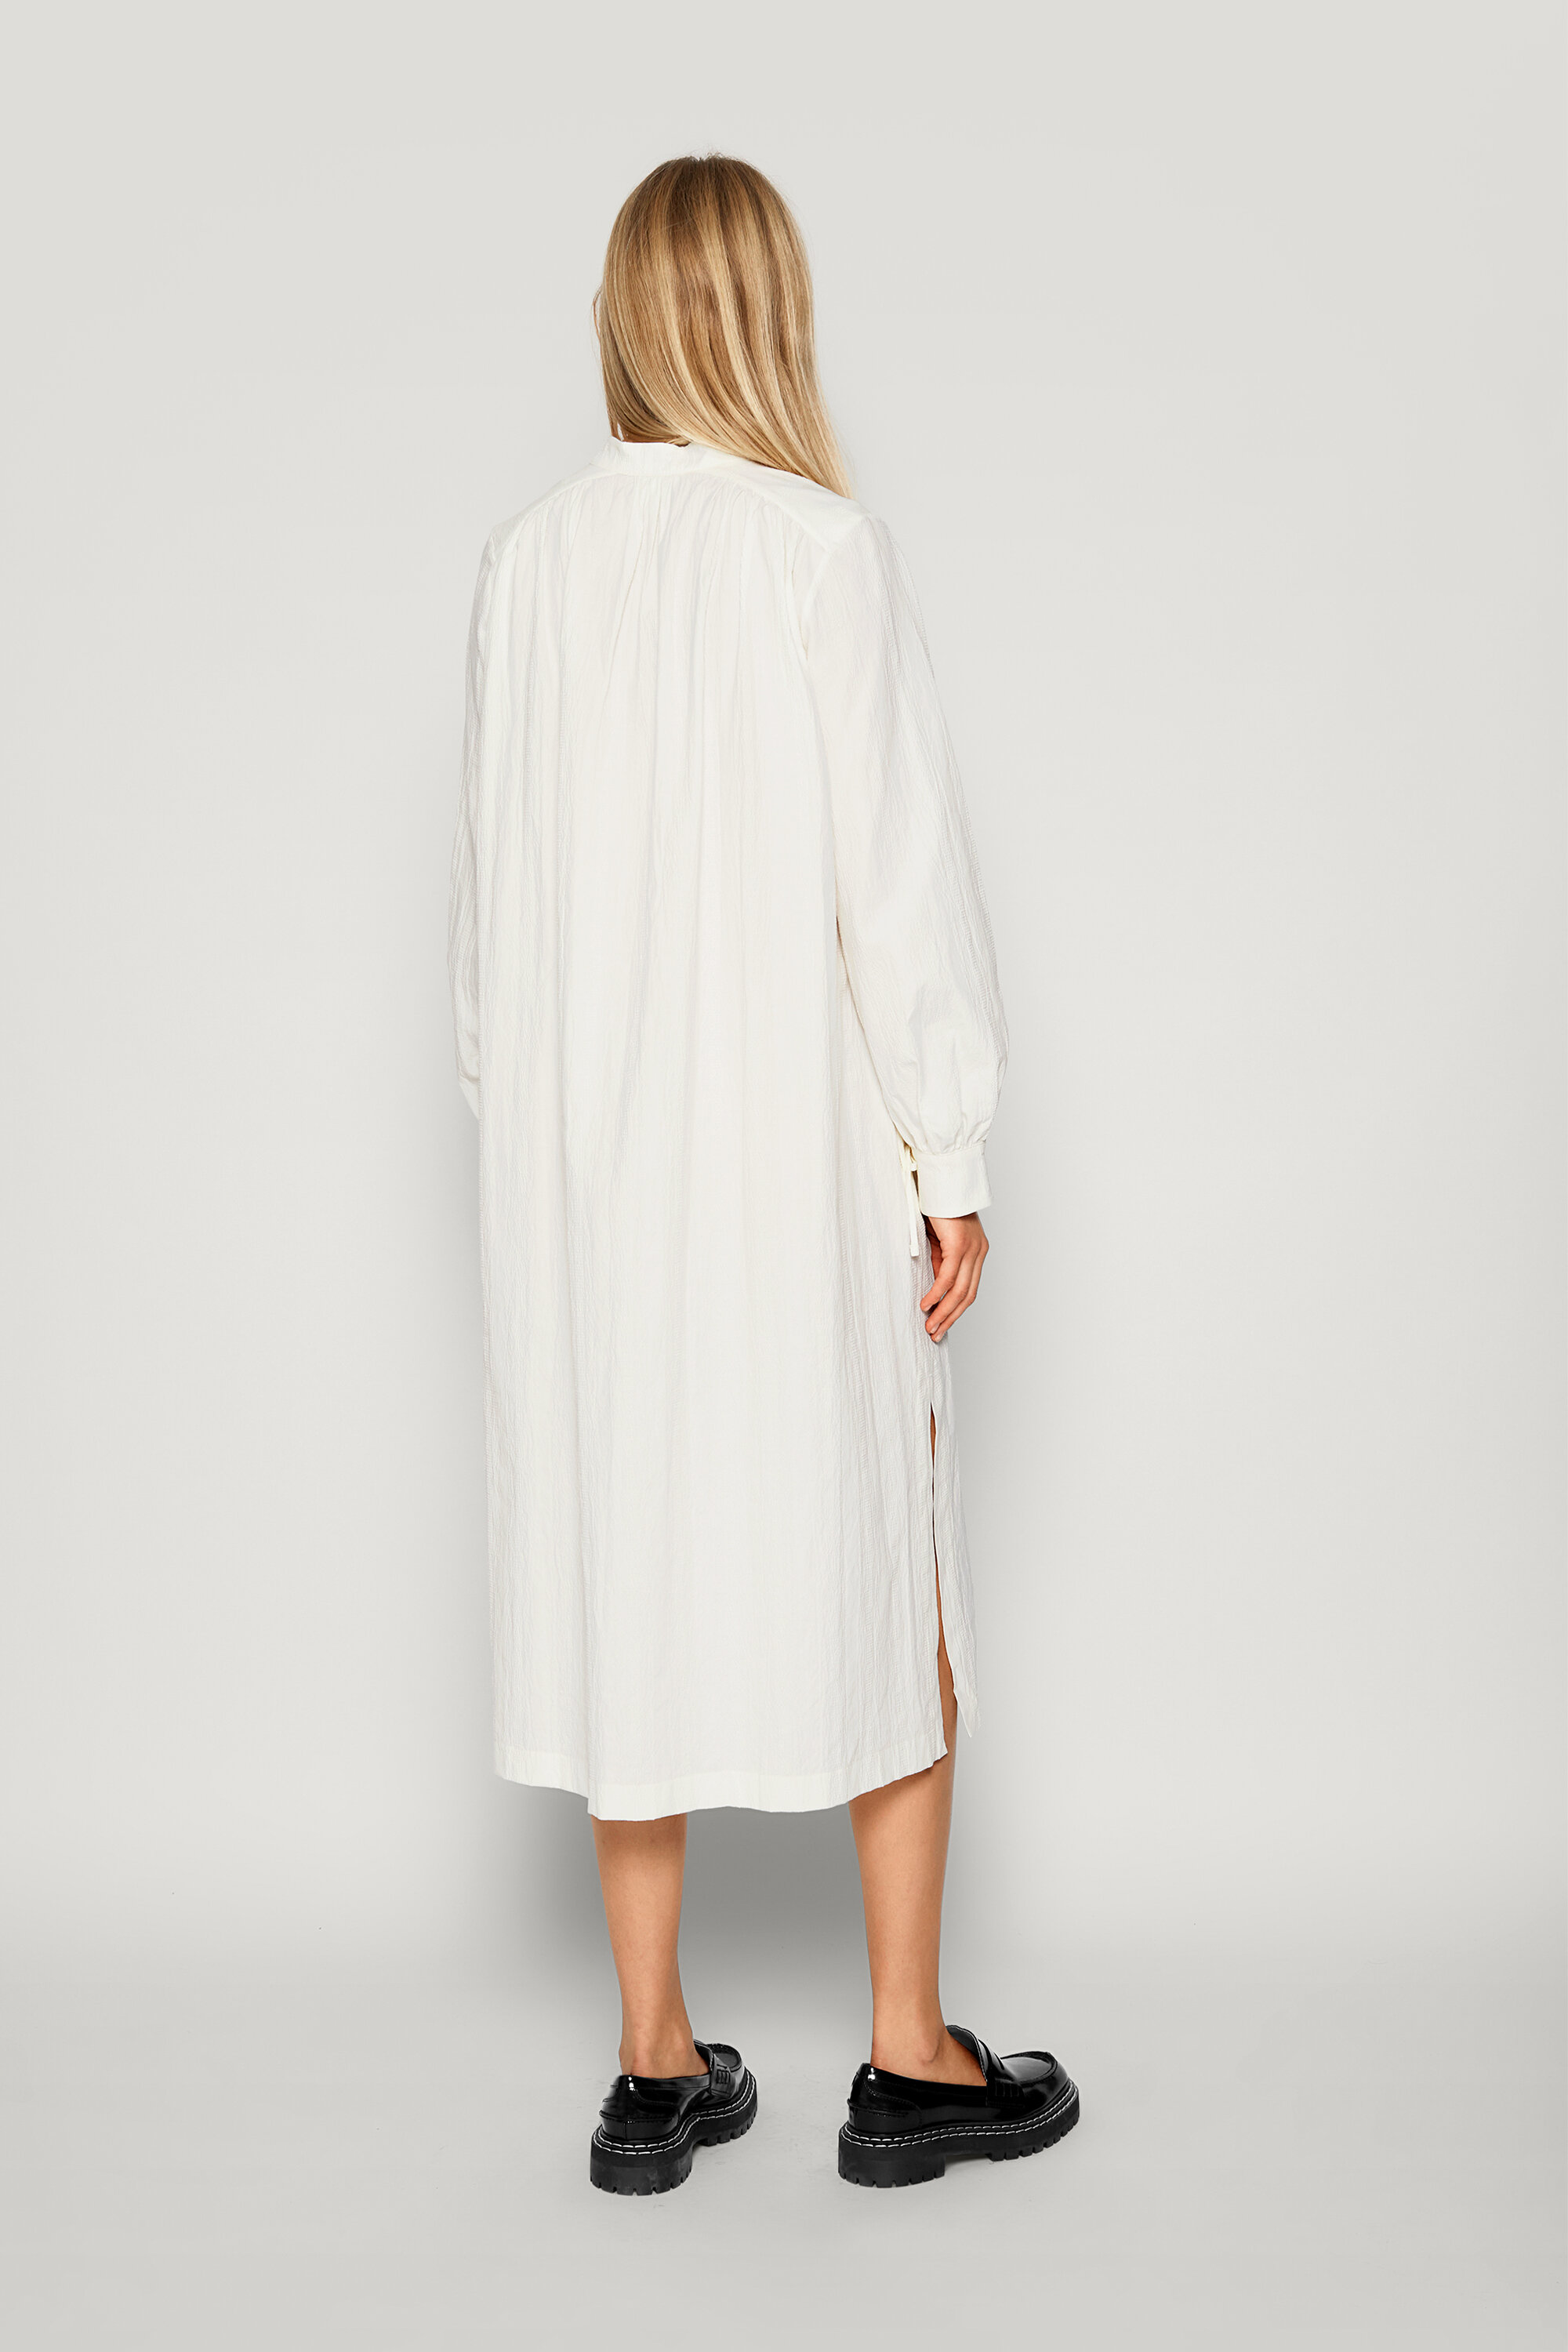 Aradia Dress Cloud Dancer This textured, semi-structured midi-length cotton dress has an open neck with a tie at the top - detail image